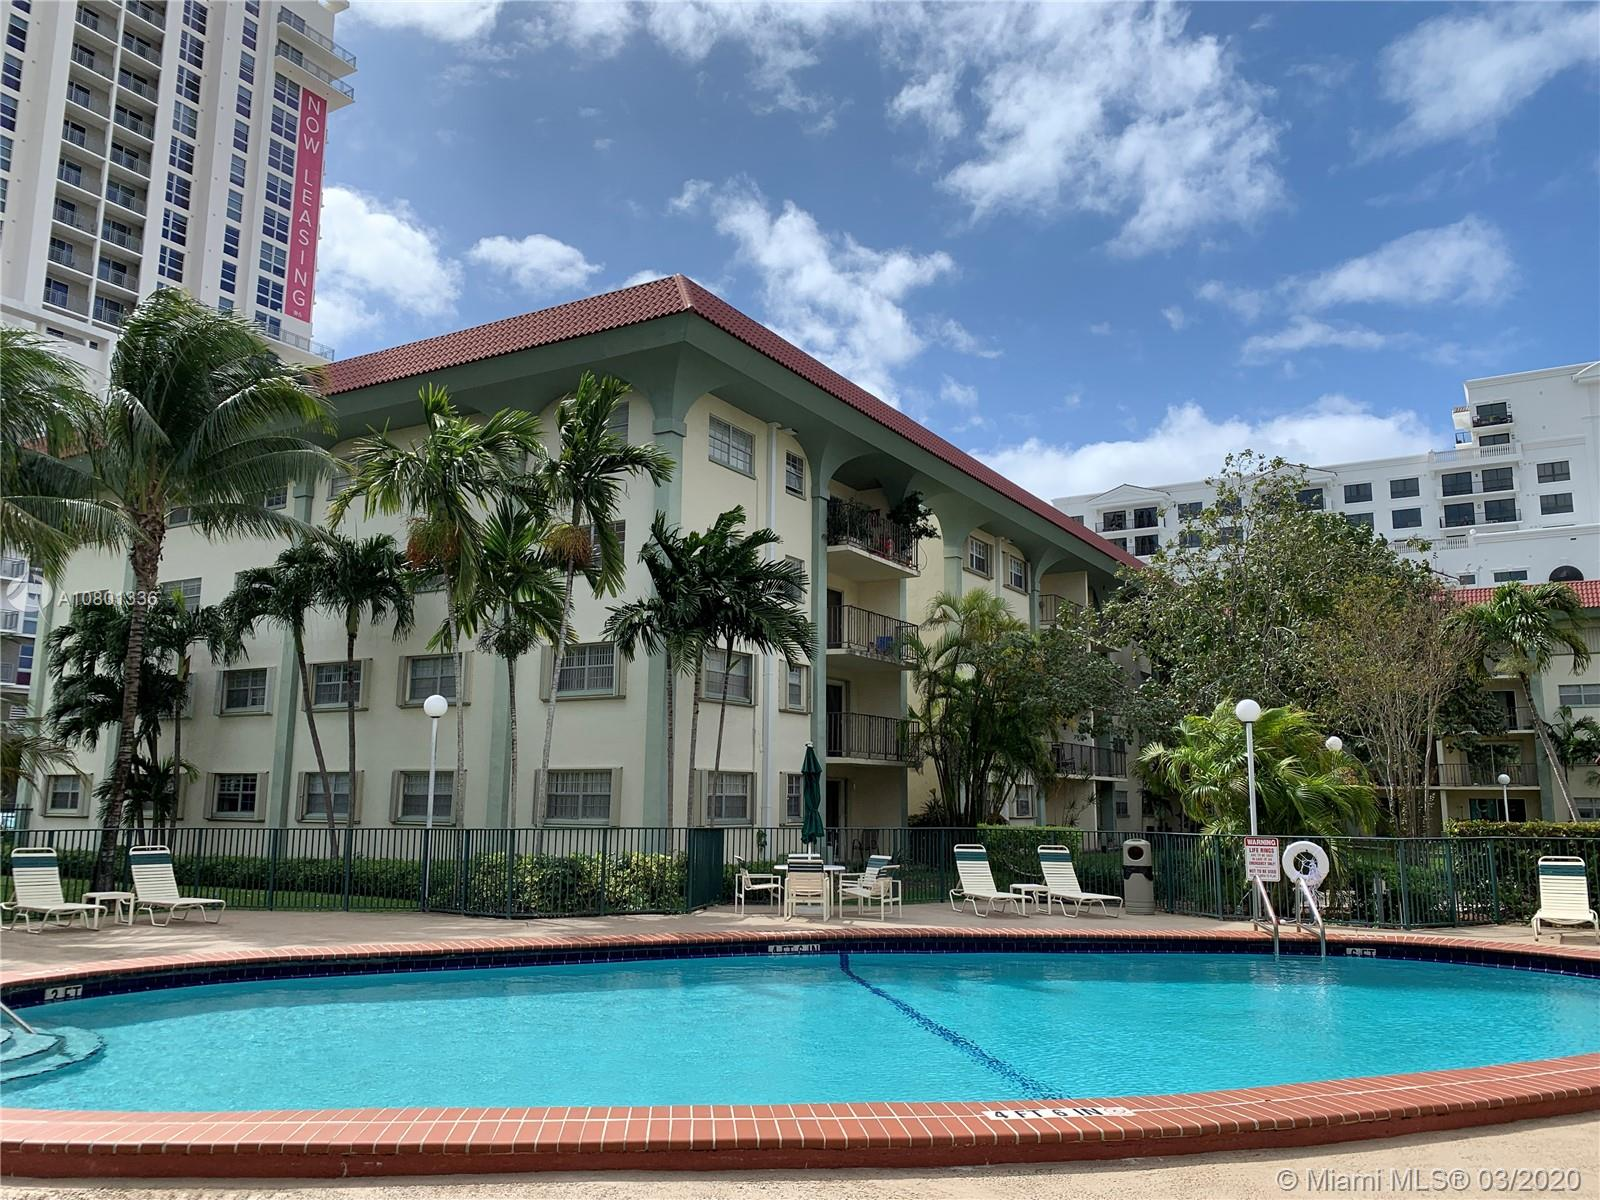 """Finance with LOW DOWNPAYMENT. Come see this spacious 2 bed/2 bath condo in the centrally located Granada Dadeland Condominiums. This 1st floor unit has a great floorplan with a large living/dining area, as well as large bedrooms and closets. This community is surrounded by luxury condo buildings and is within 2 short blocks from Dadeland Mall. Being so close to Snapper Creek Exwy (878), Palmetto Exwy (826), N. Kendall Drive, and US-1, will make commuting a breeze. In addition, this home is within walking distance to the Dadeland North Metrorail Station for fast, easy and convenient access to Downtown Miami, Coconut Grove, Coral Gables, South Miami and Miami International Airport. **The floor is polished concrete for that """"industrial look"""", OR ready for new flooring based on buyer's choice."""